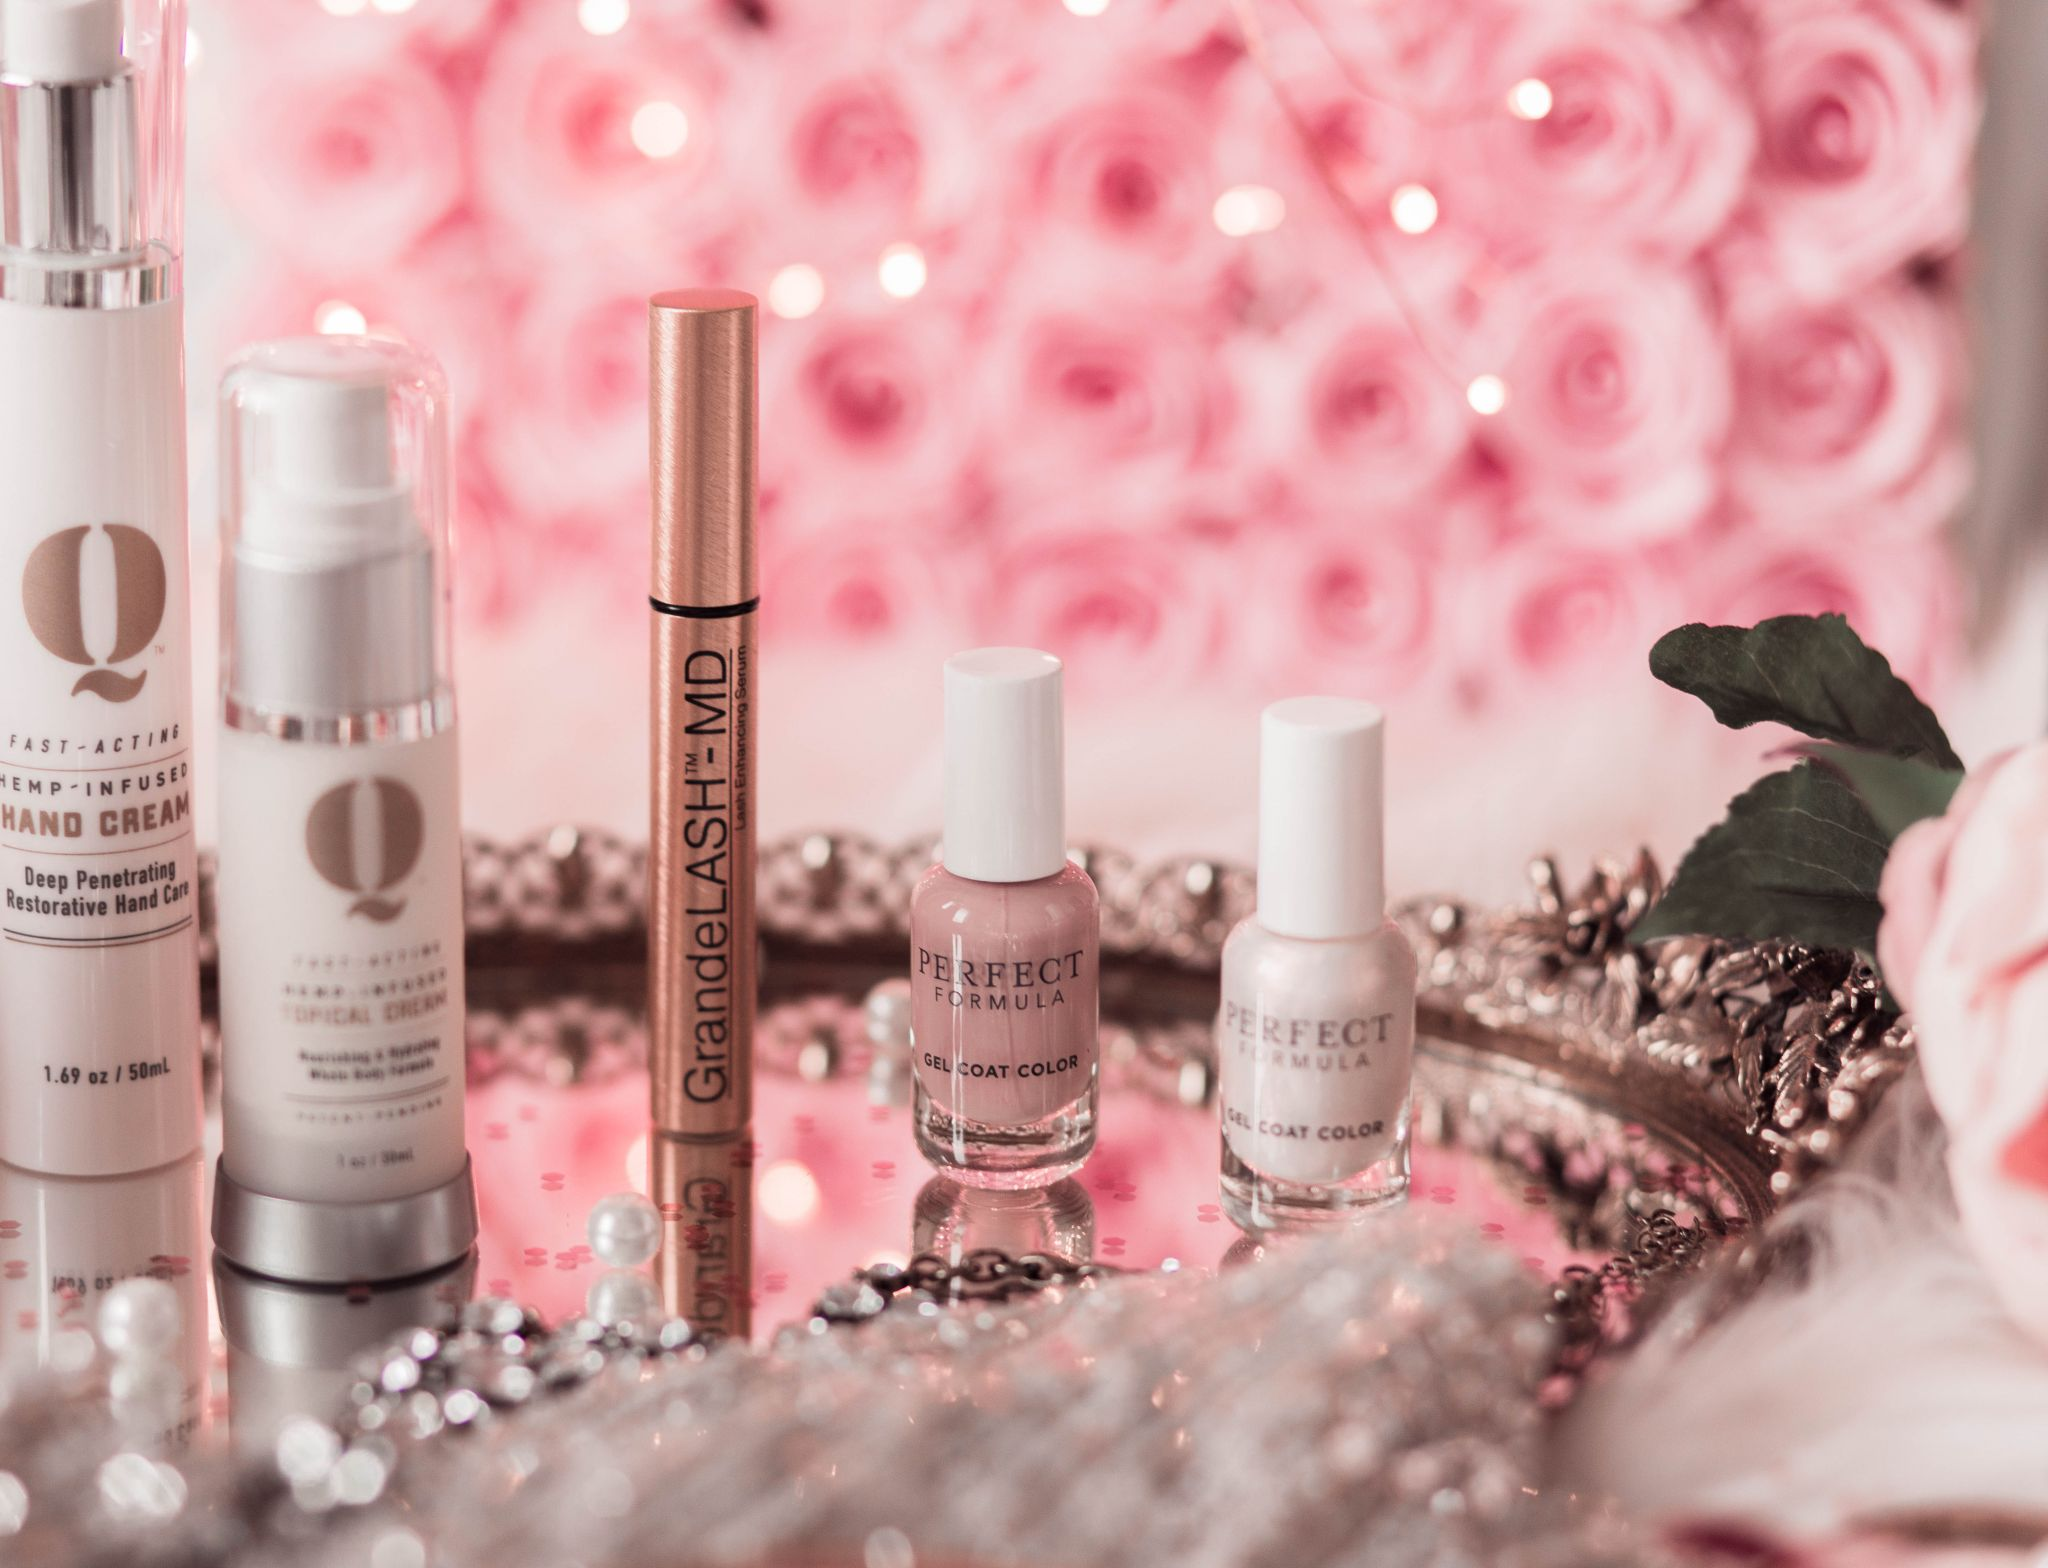 ocsar-worthy beauty products